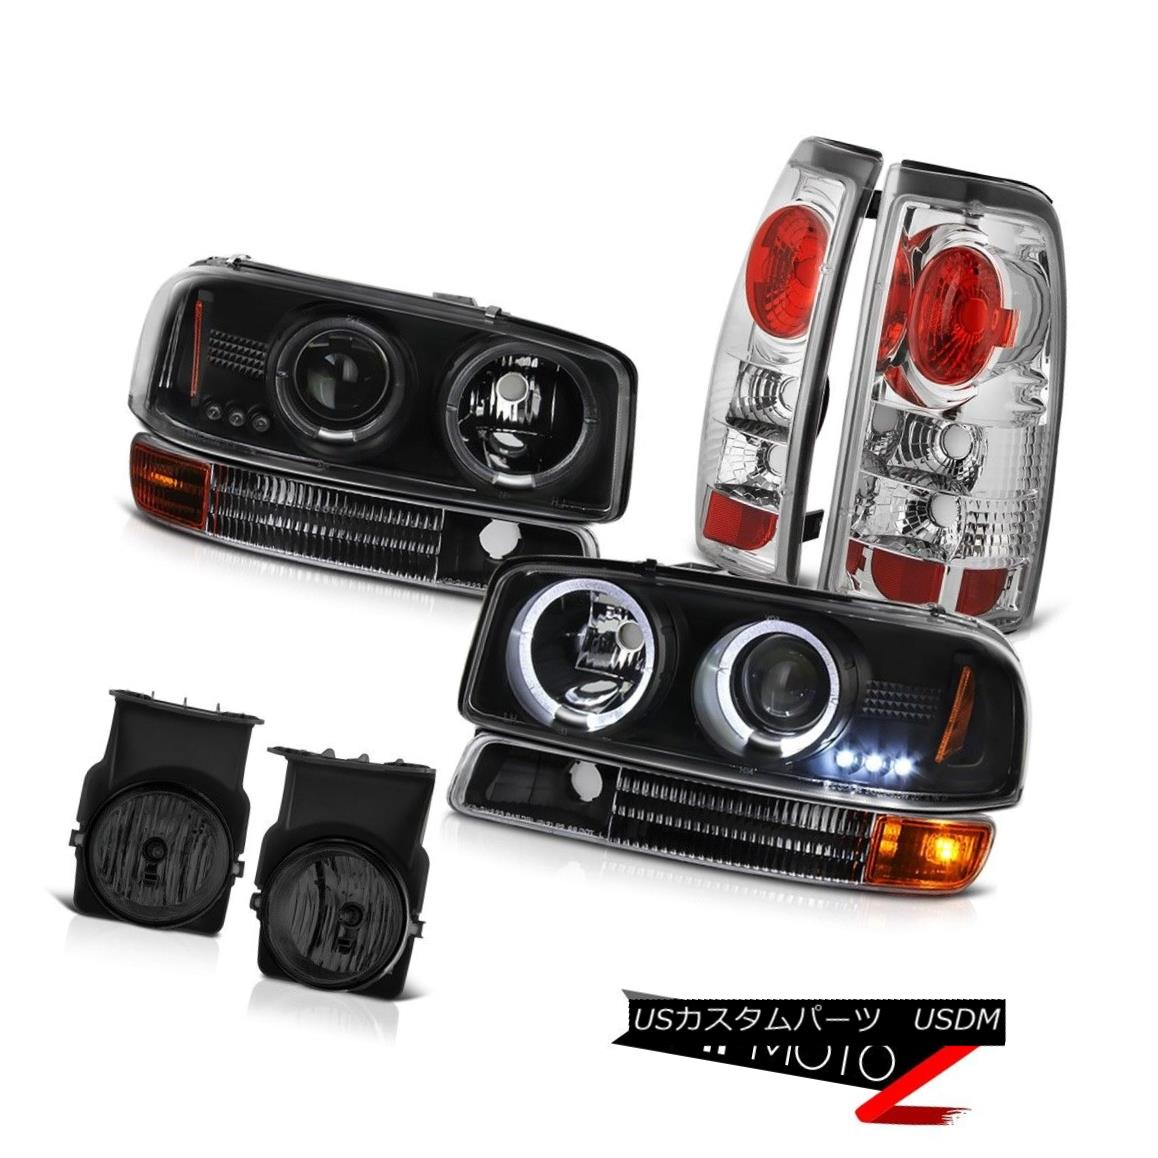 ヘッドライト 2X Halo LED Headlamp Black Bumper Signal Brake TailLamp Foglight 2003 Sierra SLT 2X Halo LEDヘッドランプブラックバンパー信号ブレーキTailLamp Foglight 2003 Sierra SLT